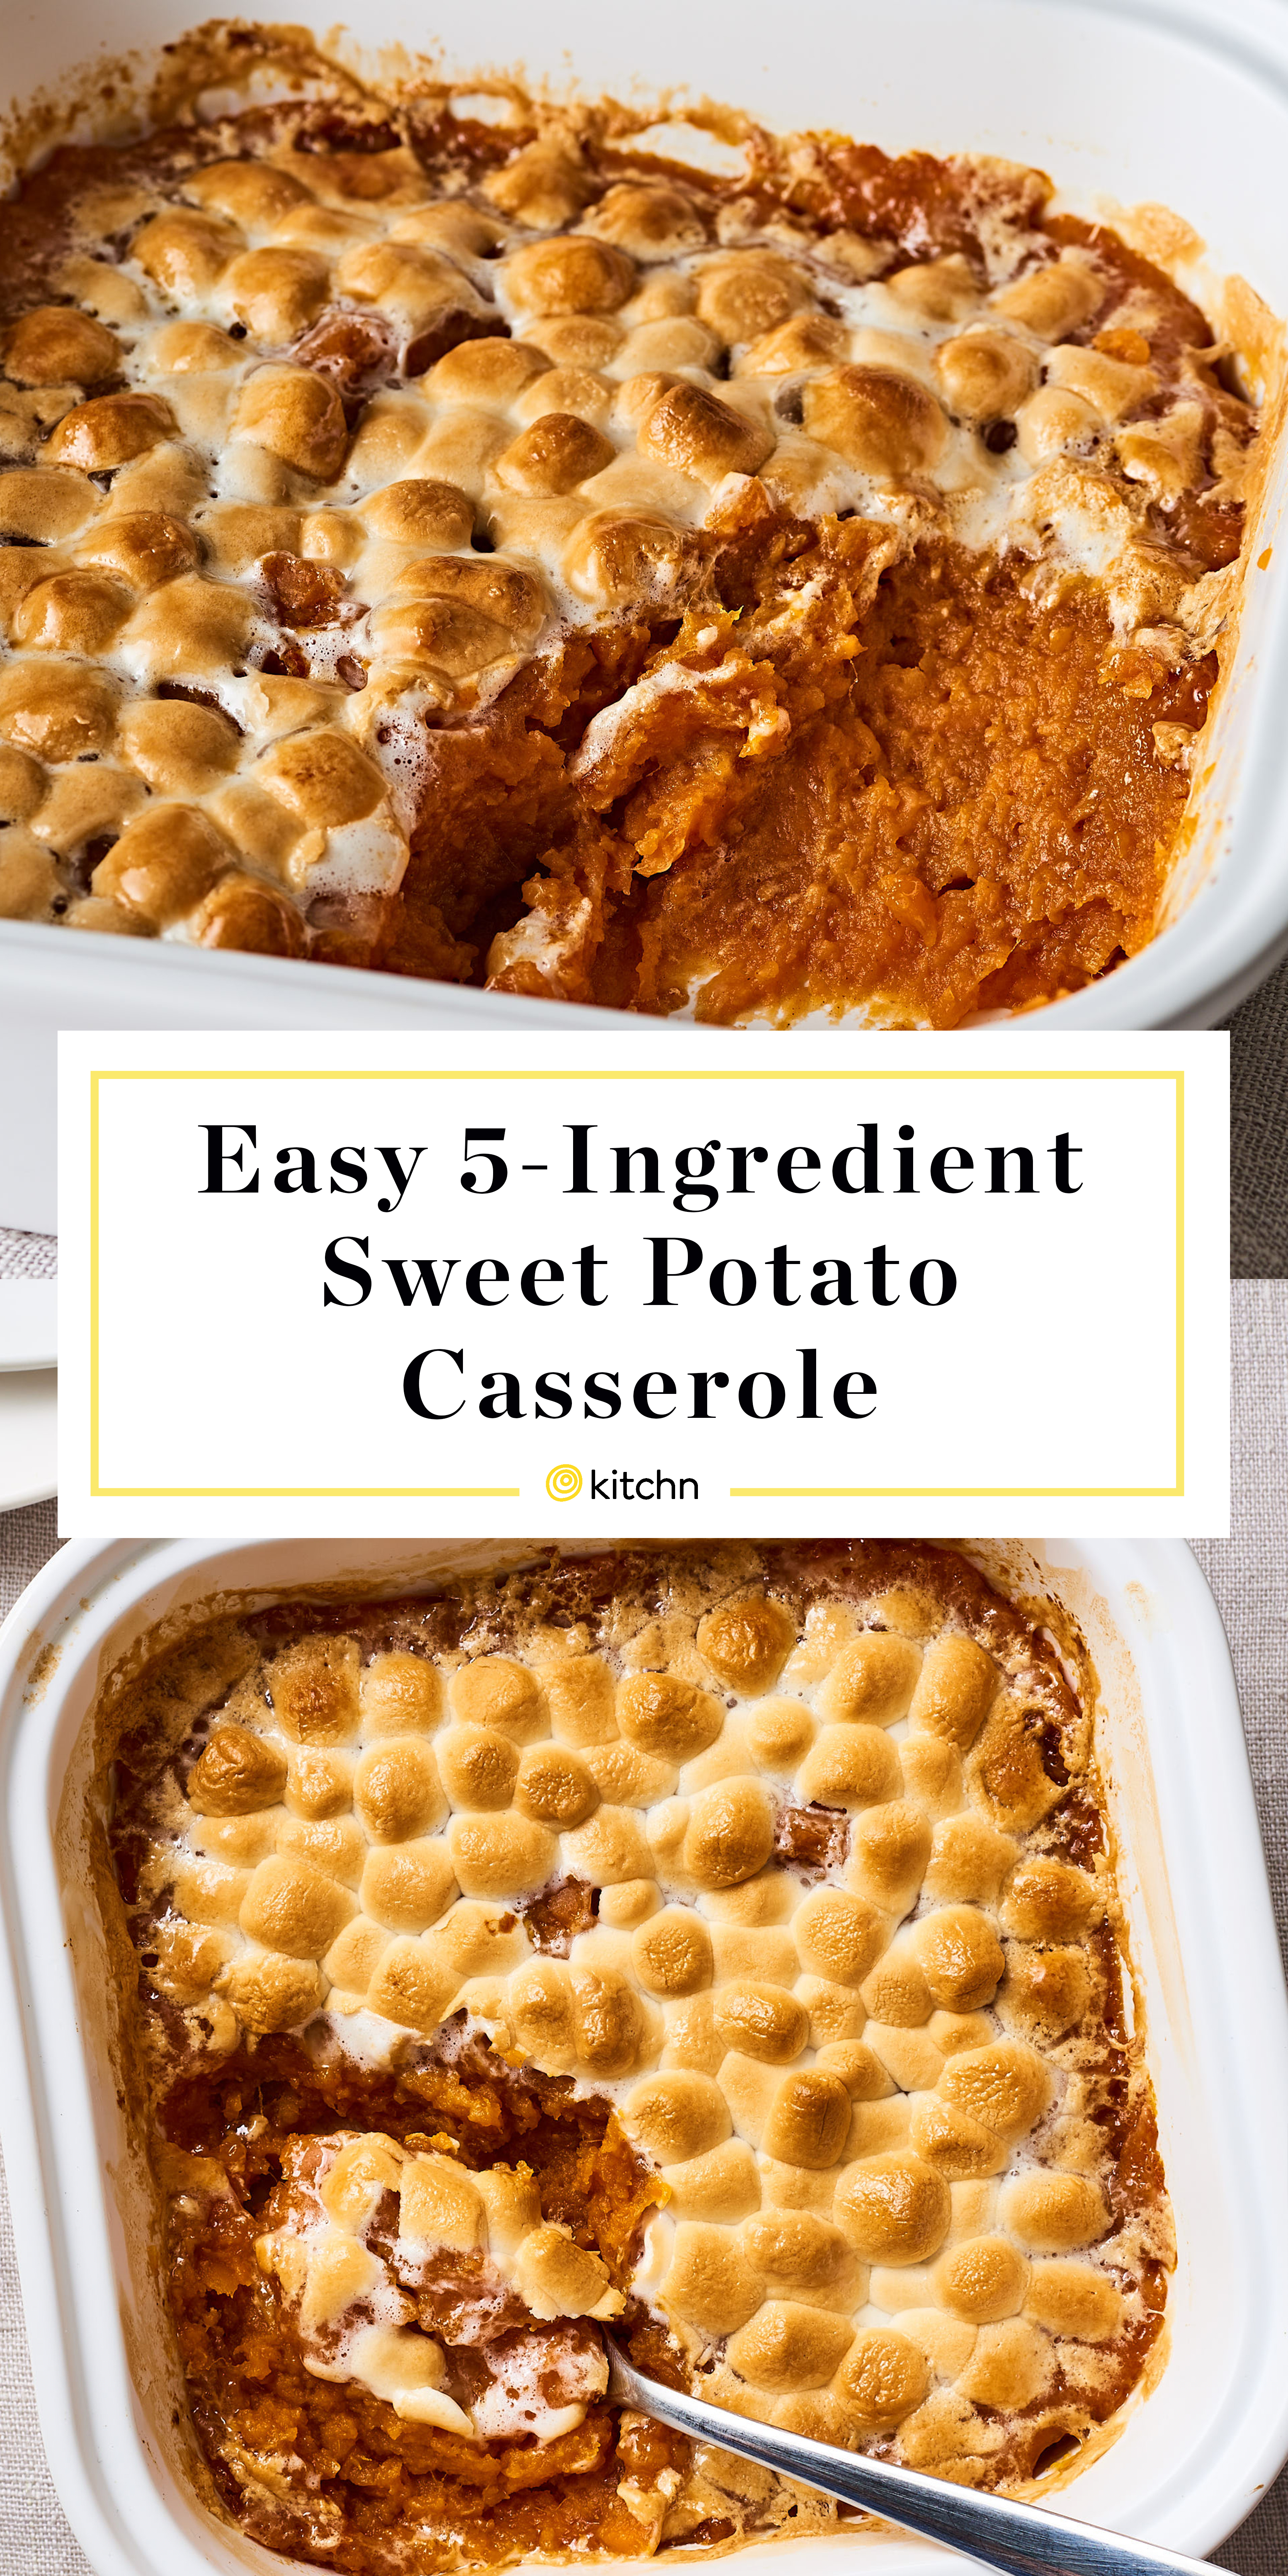 Easy Sweet Potato Casserole Recipe Kitchn